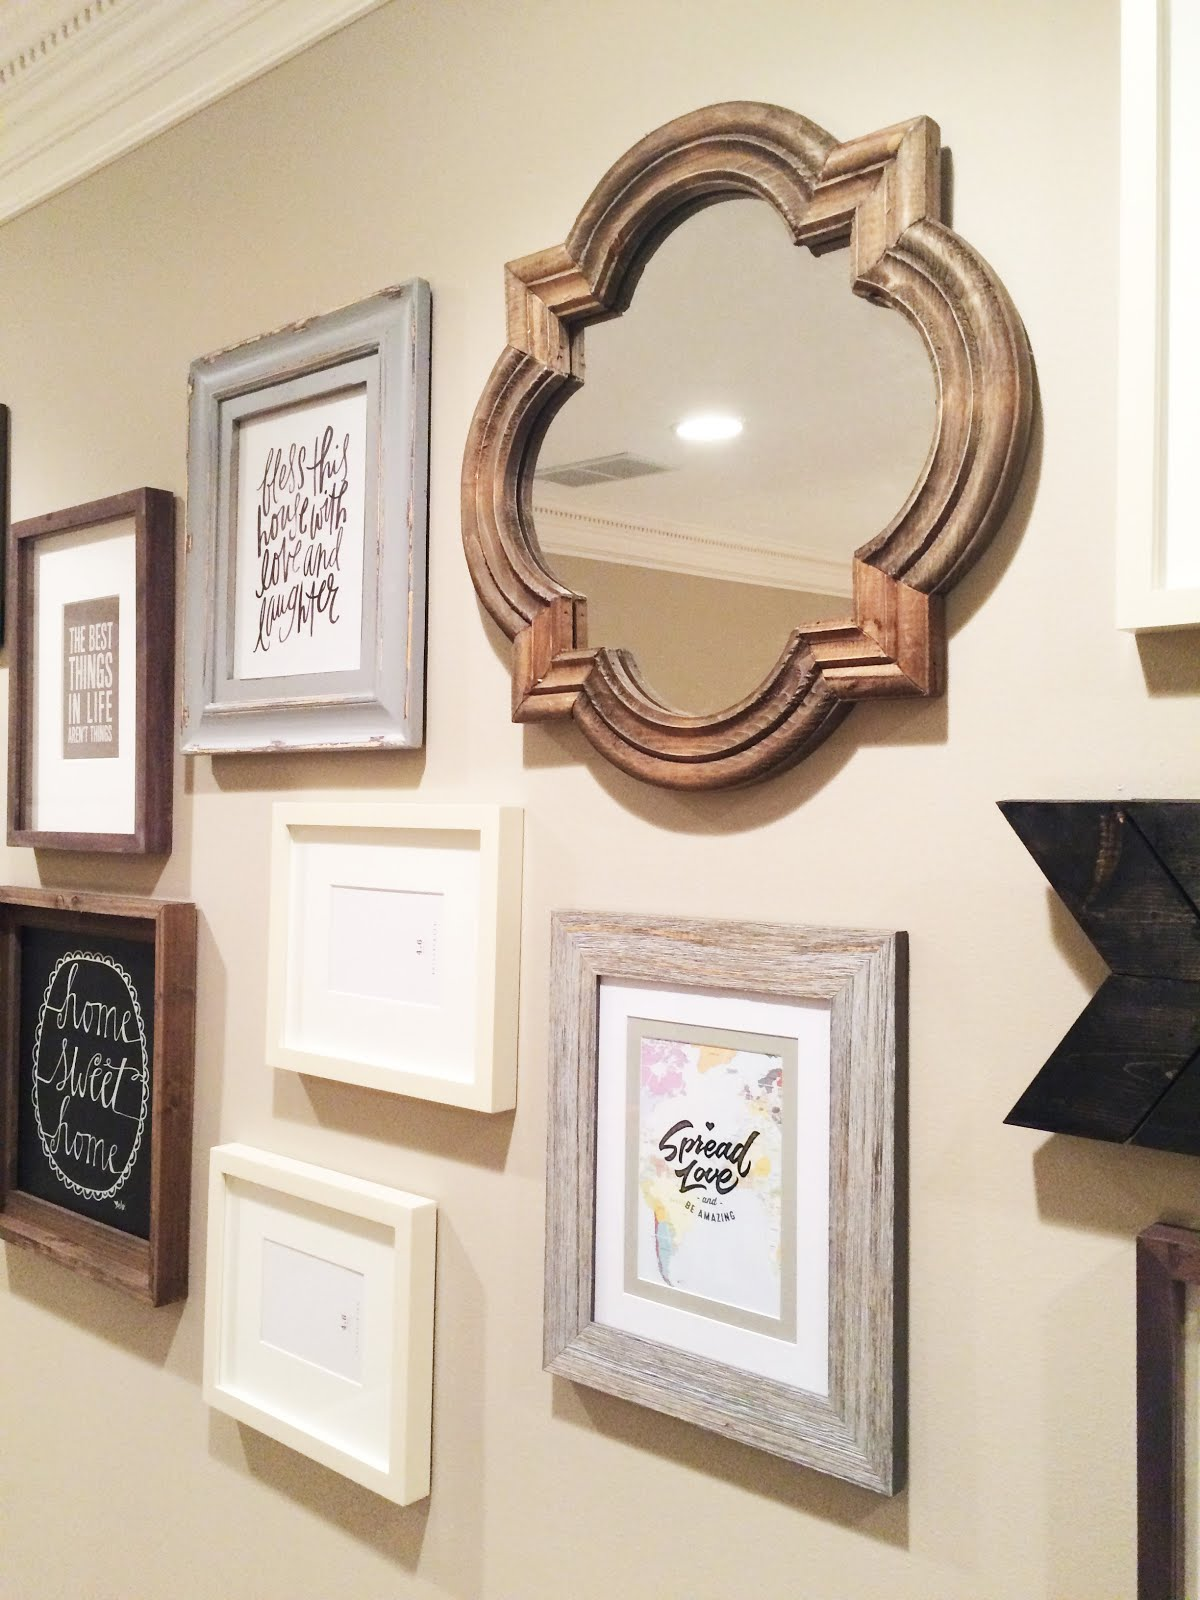 Jessica Stout Design}: Gallery Wall {Client Design}